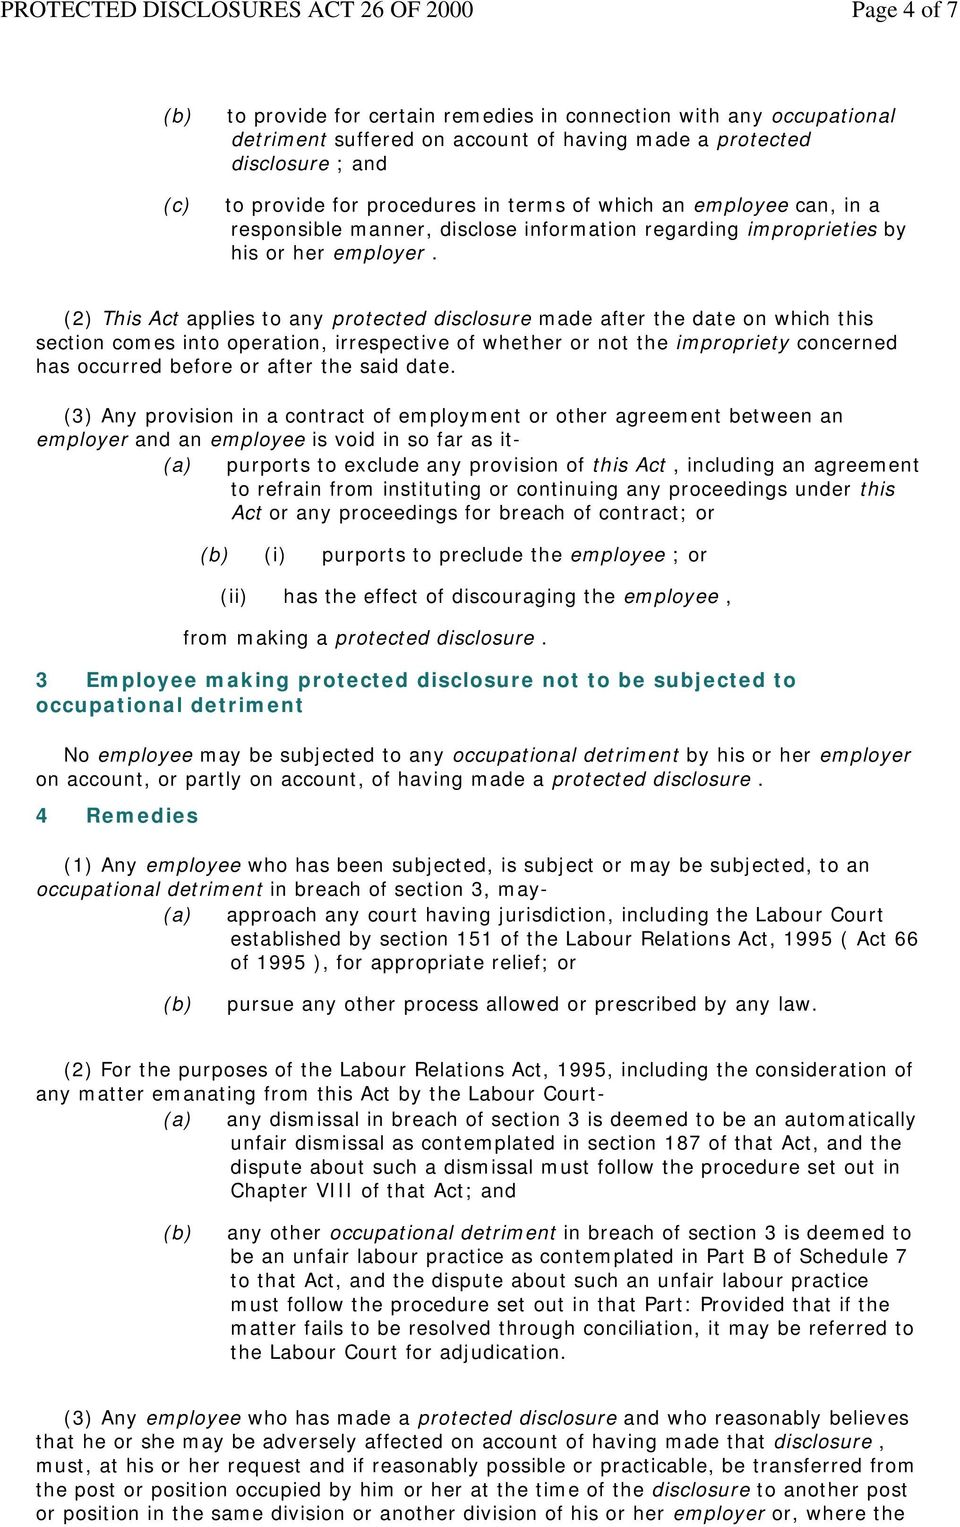 (2) This Act applies to any protected disclosure made after the date on which this section comes into operation, irrespective of whether or not the impropriety concerned has occurred before or after